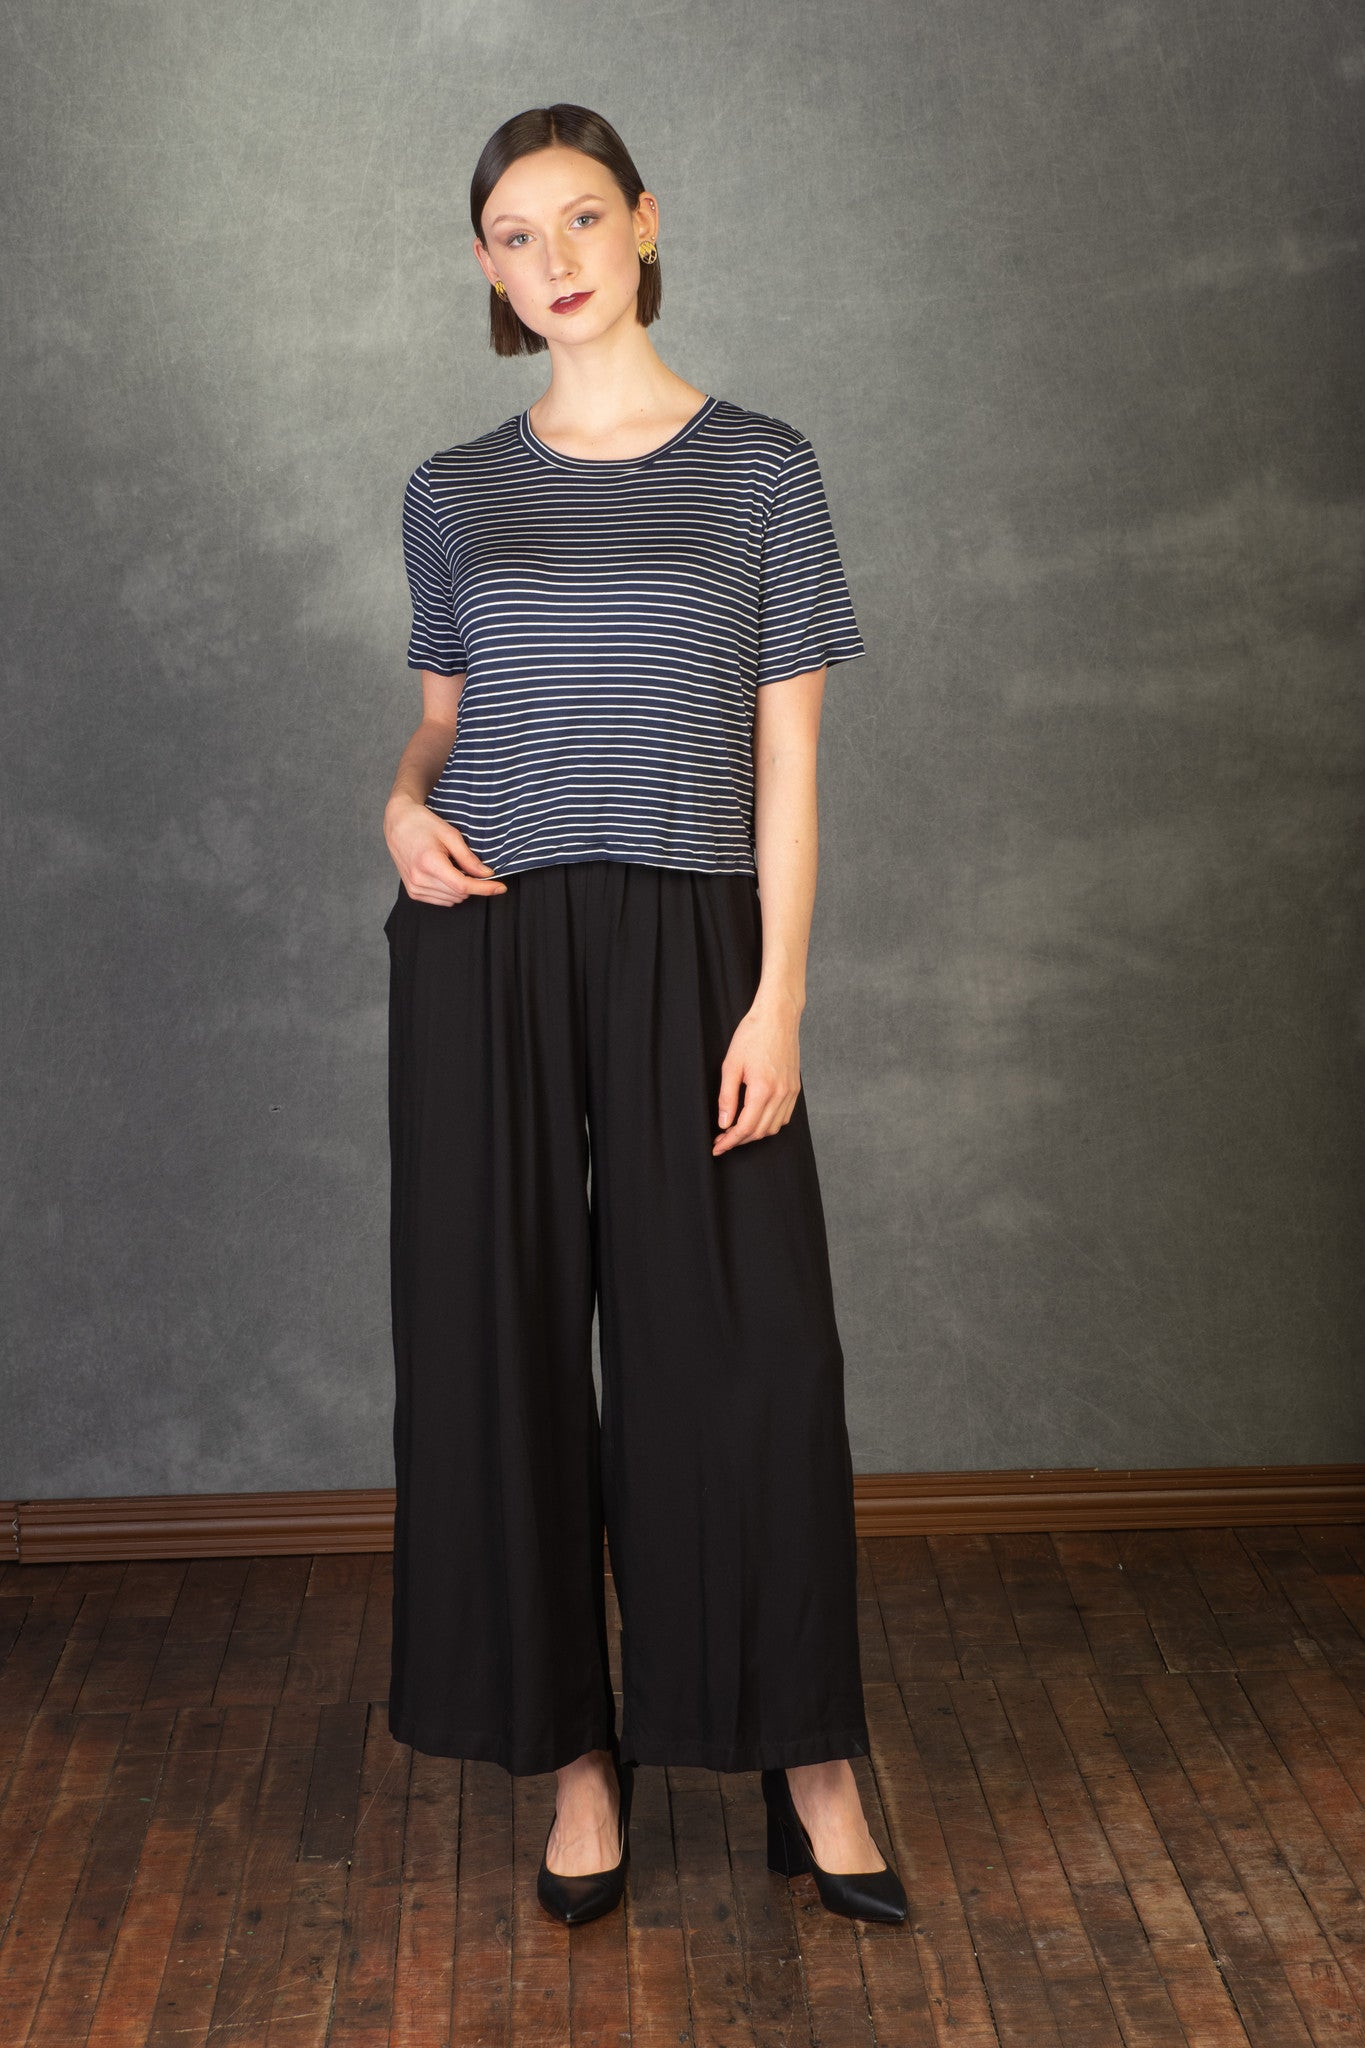 Ayla Top by MAS, Navy with White Stripe, T-shirt, boxy fit, half-length sleeve, cropped fit, size XS to XL, made in Montreal